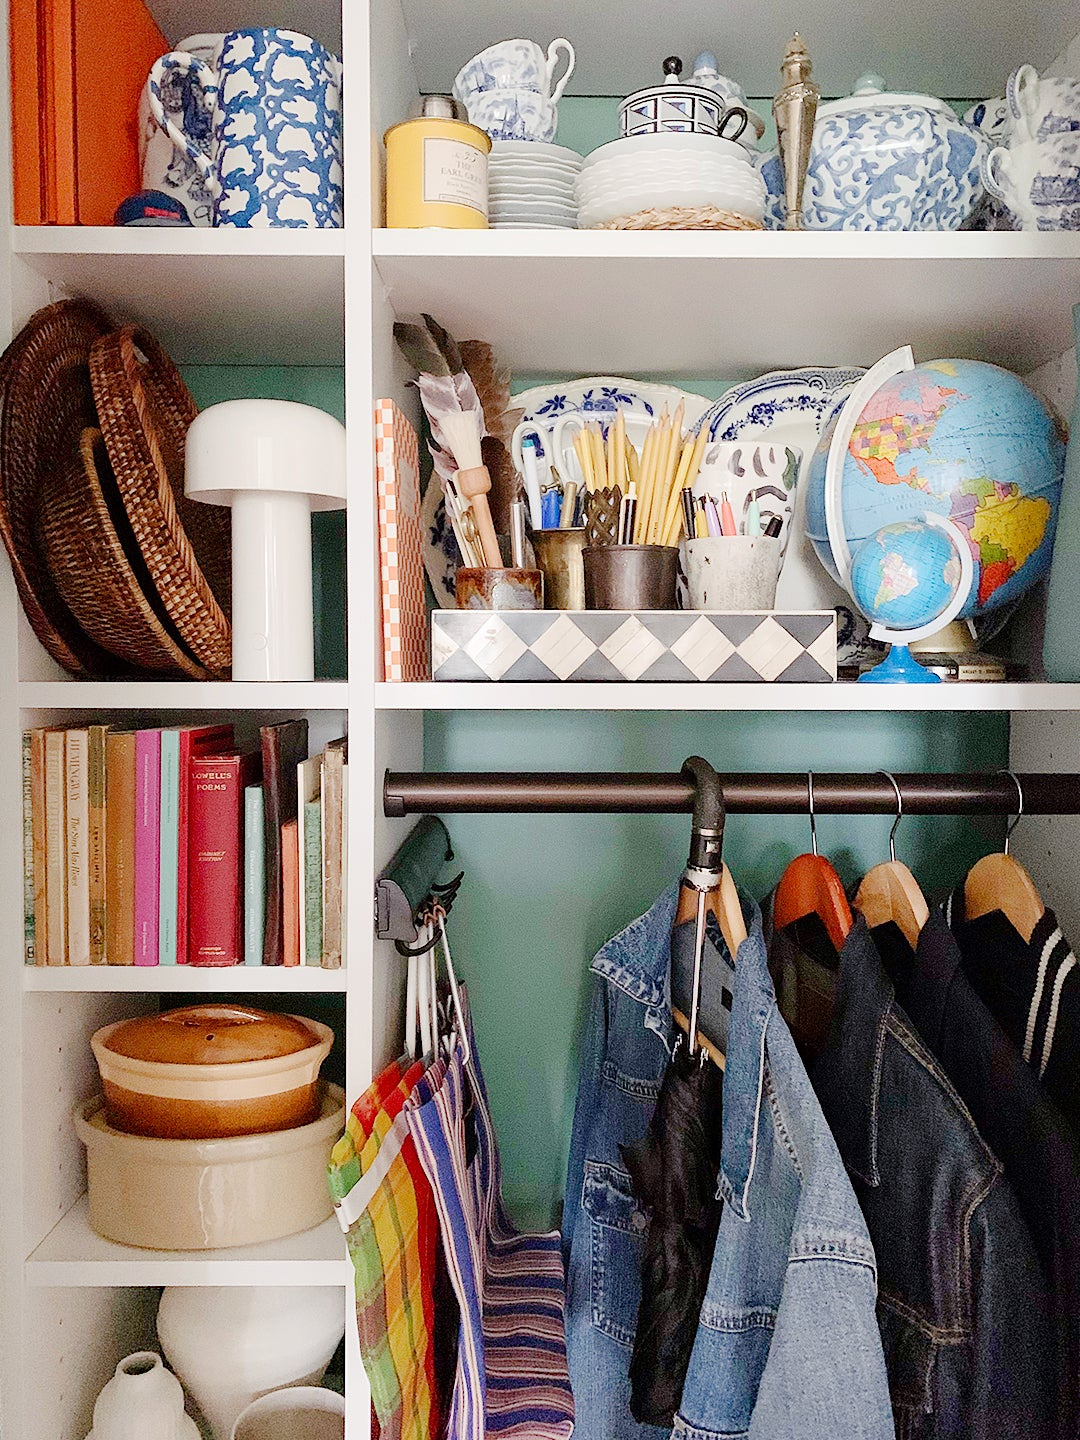 Our Style Editor's Front Hall Closet Features an Ingenious Spot for Tote Bags